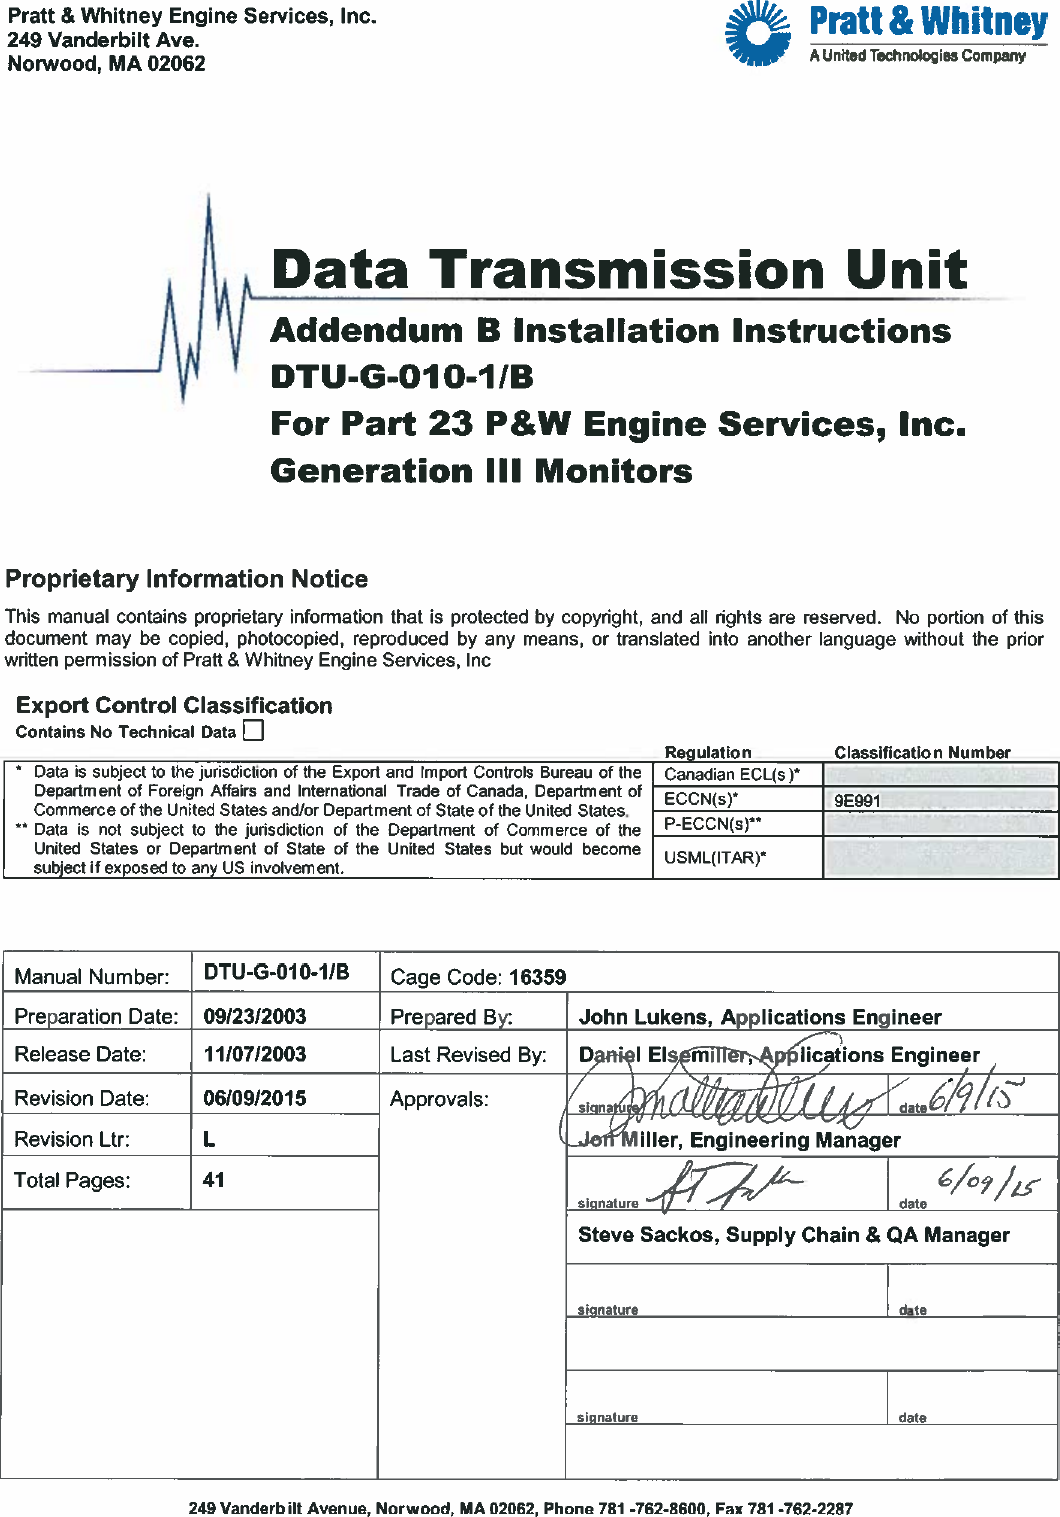 Pratt And Whitney Engine Services Fast34e Flight Data Raytheon Wiring Harness Acquisition Storage Transmission User Manual Dtu G 010 1 B